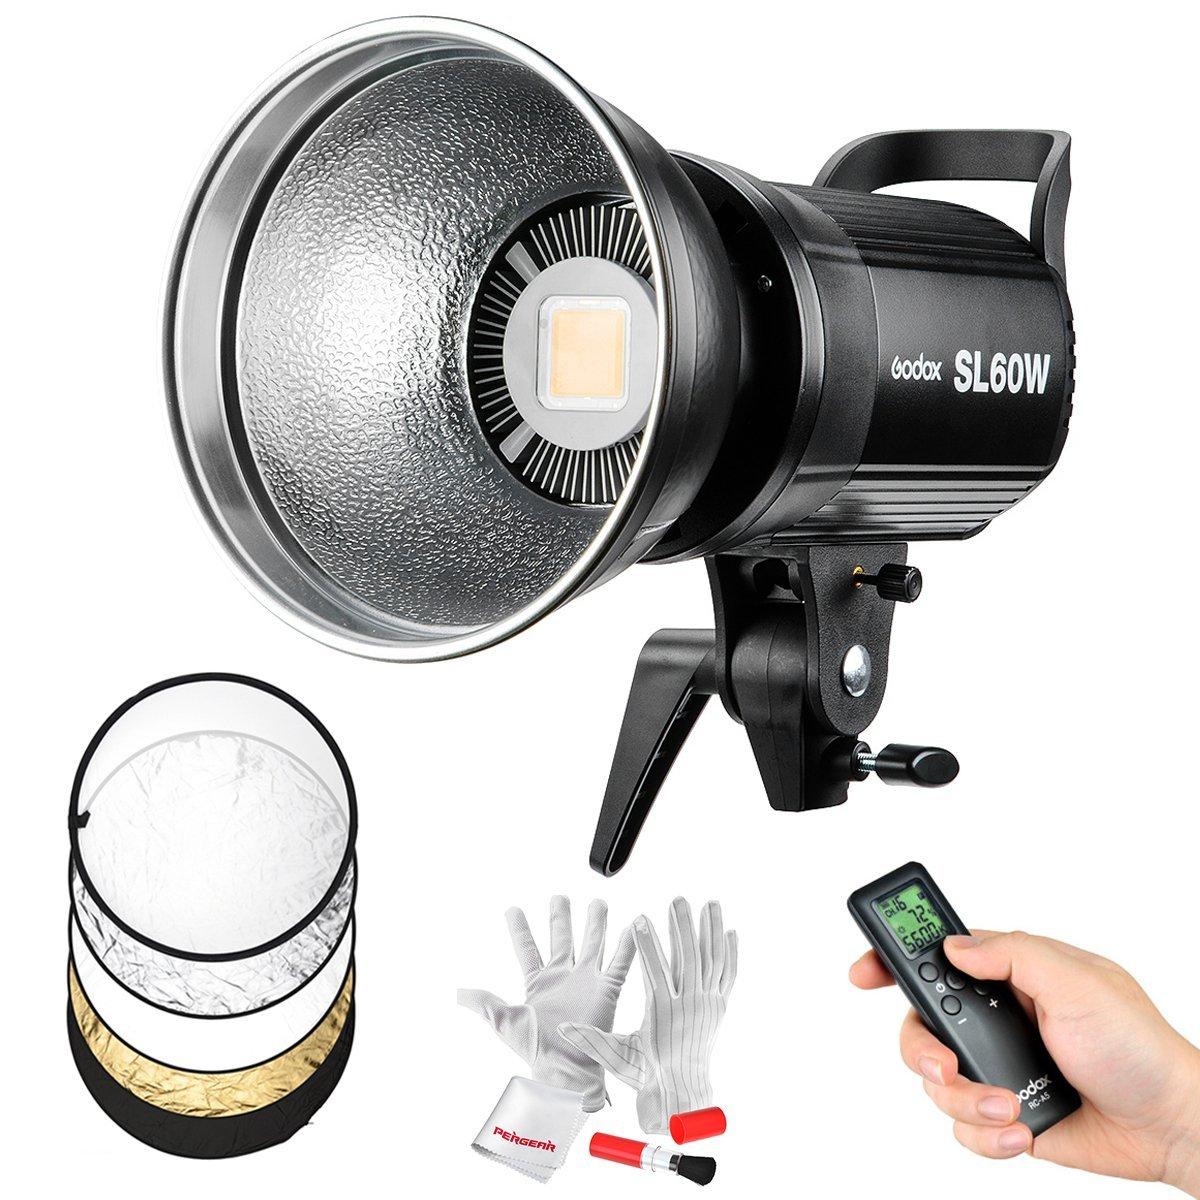 Godox SL-60W 60W CRI95+ Qa>90 5600±300K Bowens Mount High Power Led Continuous Video Light with Large-Sized LCD Panel - Wirelessly Adjust Brightness, 433MHz Grouping System(6 Groups & 16 Channels)